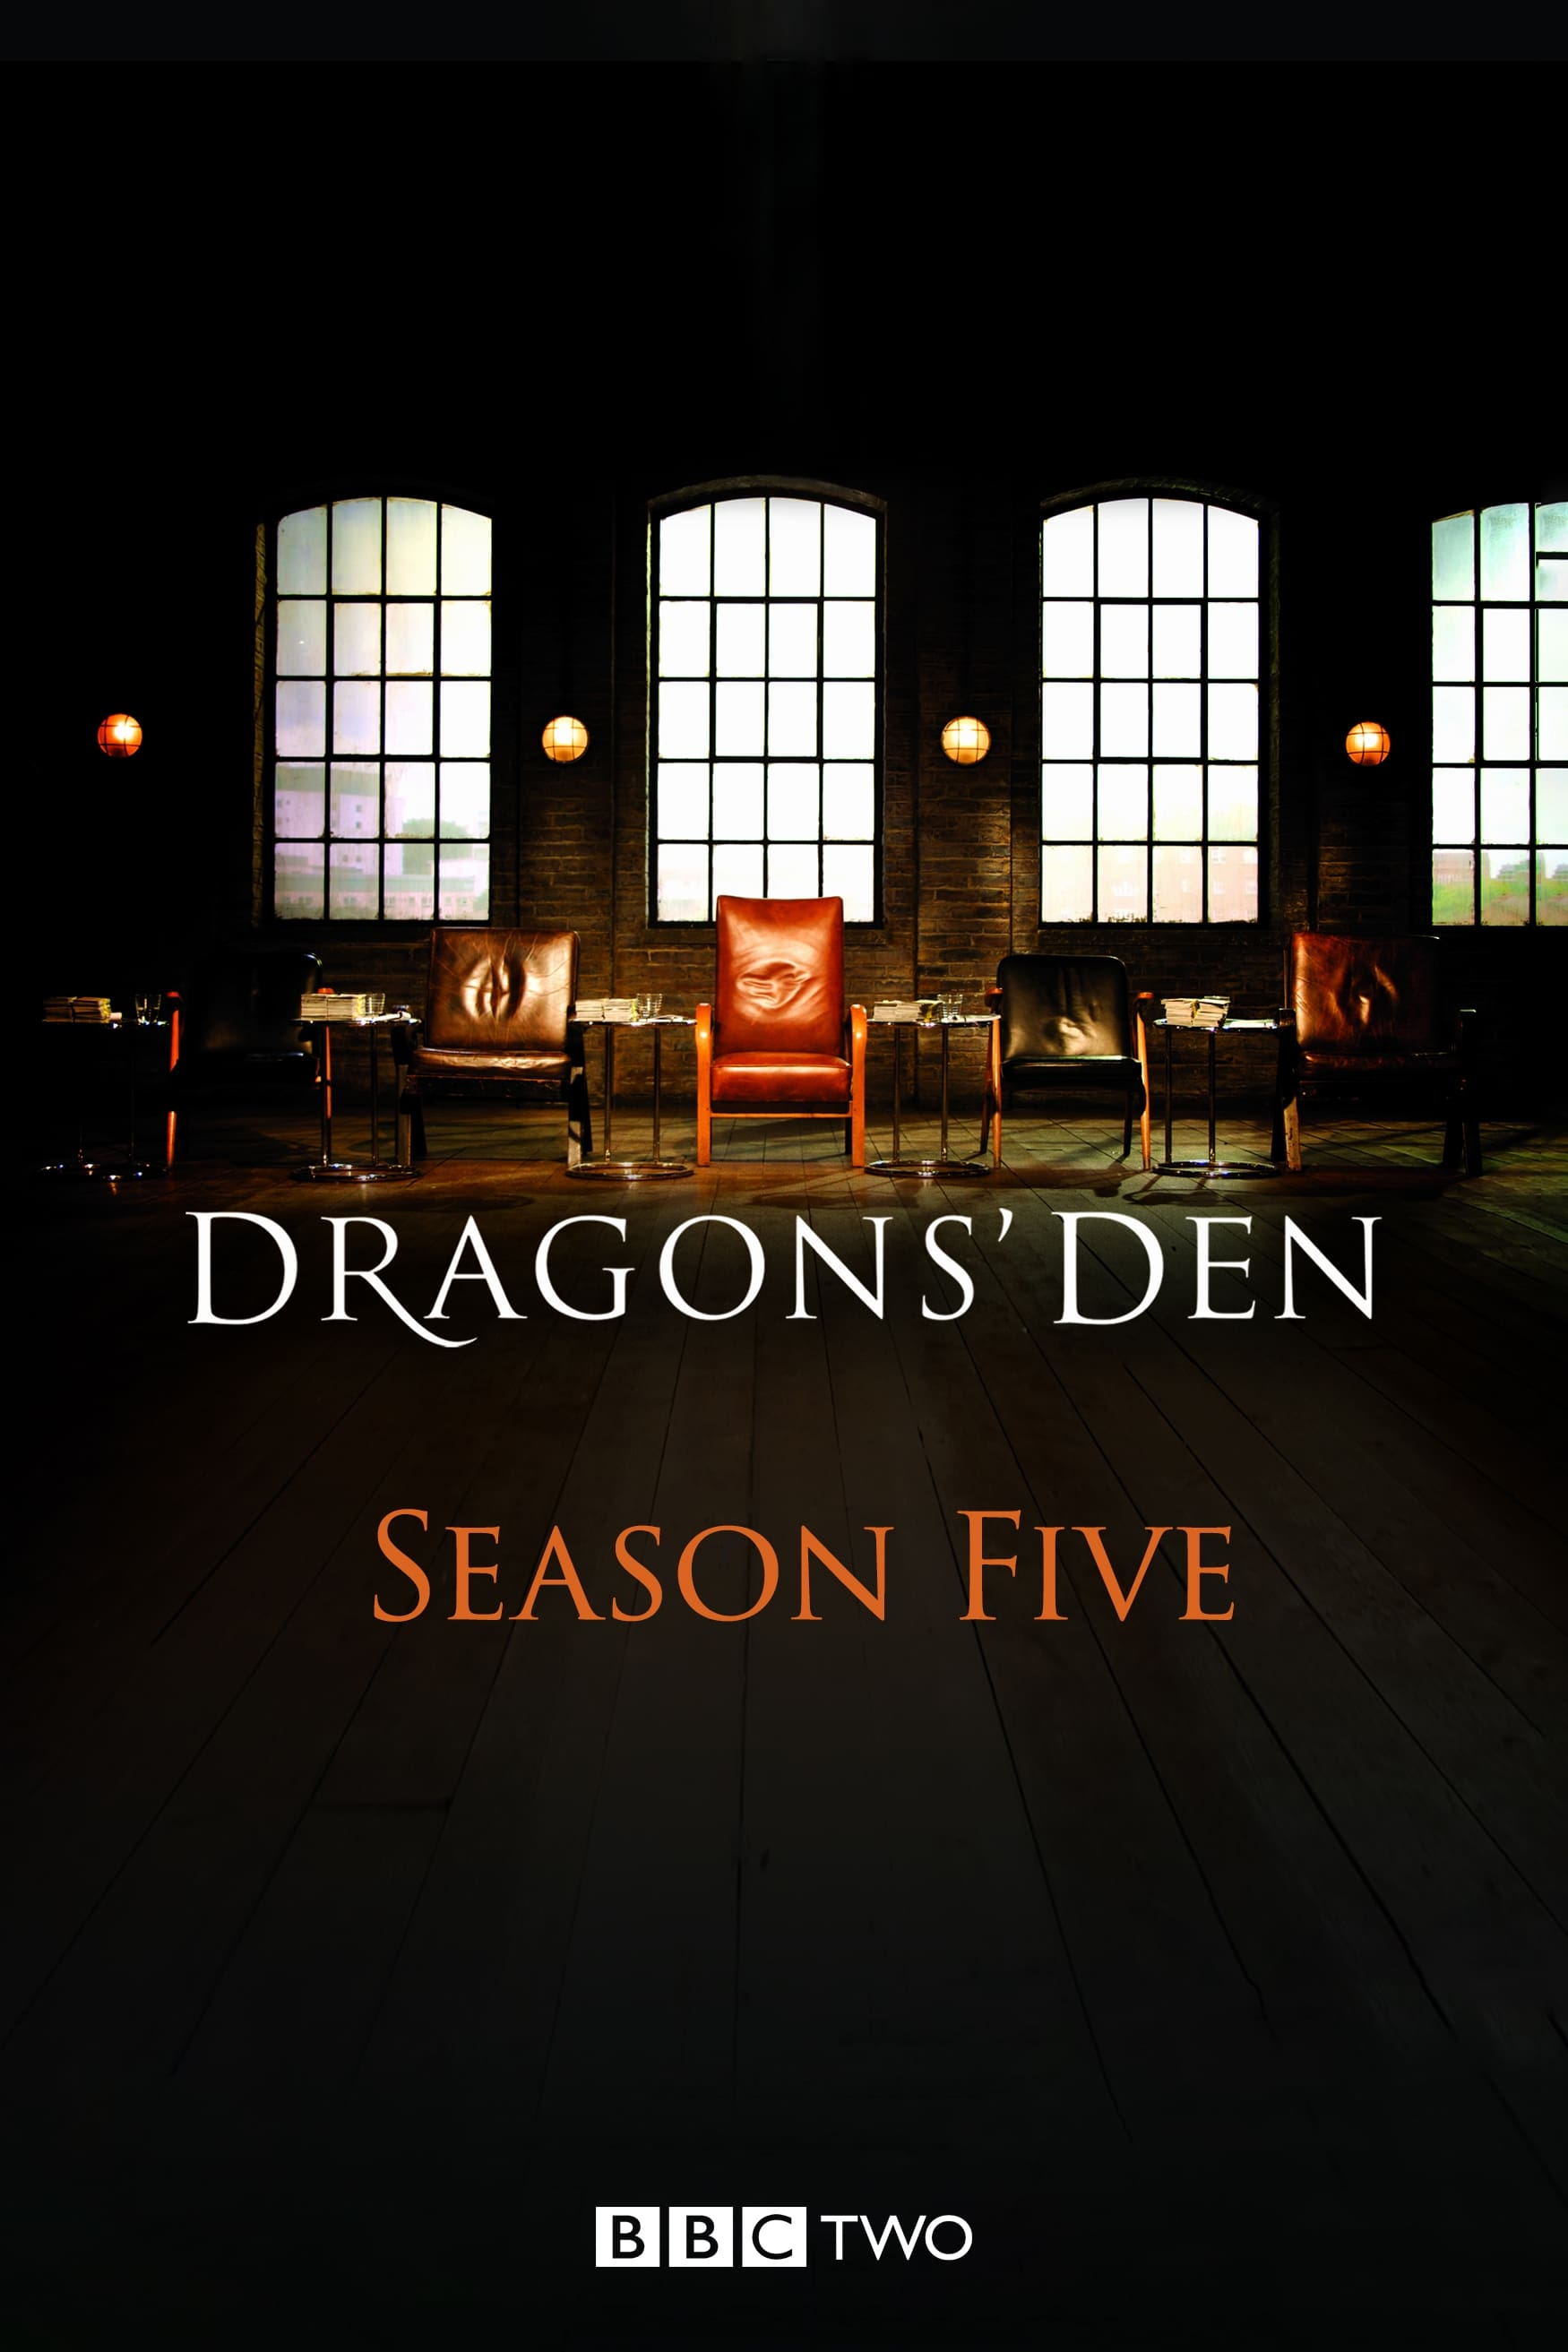 Dragons' Den Season 5